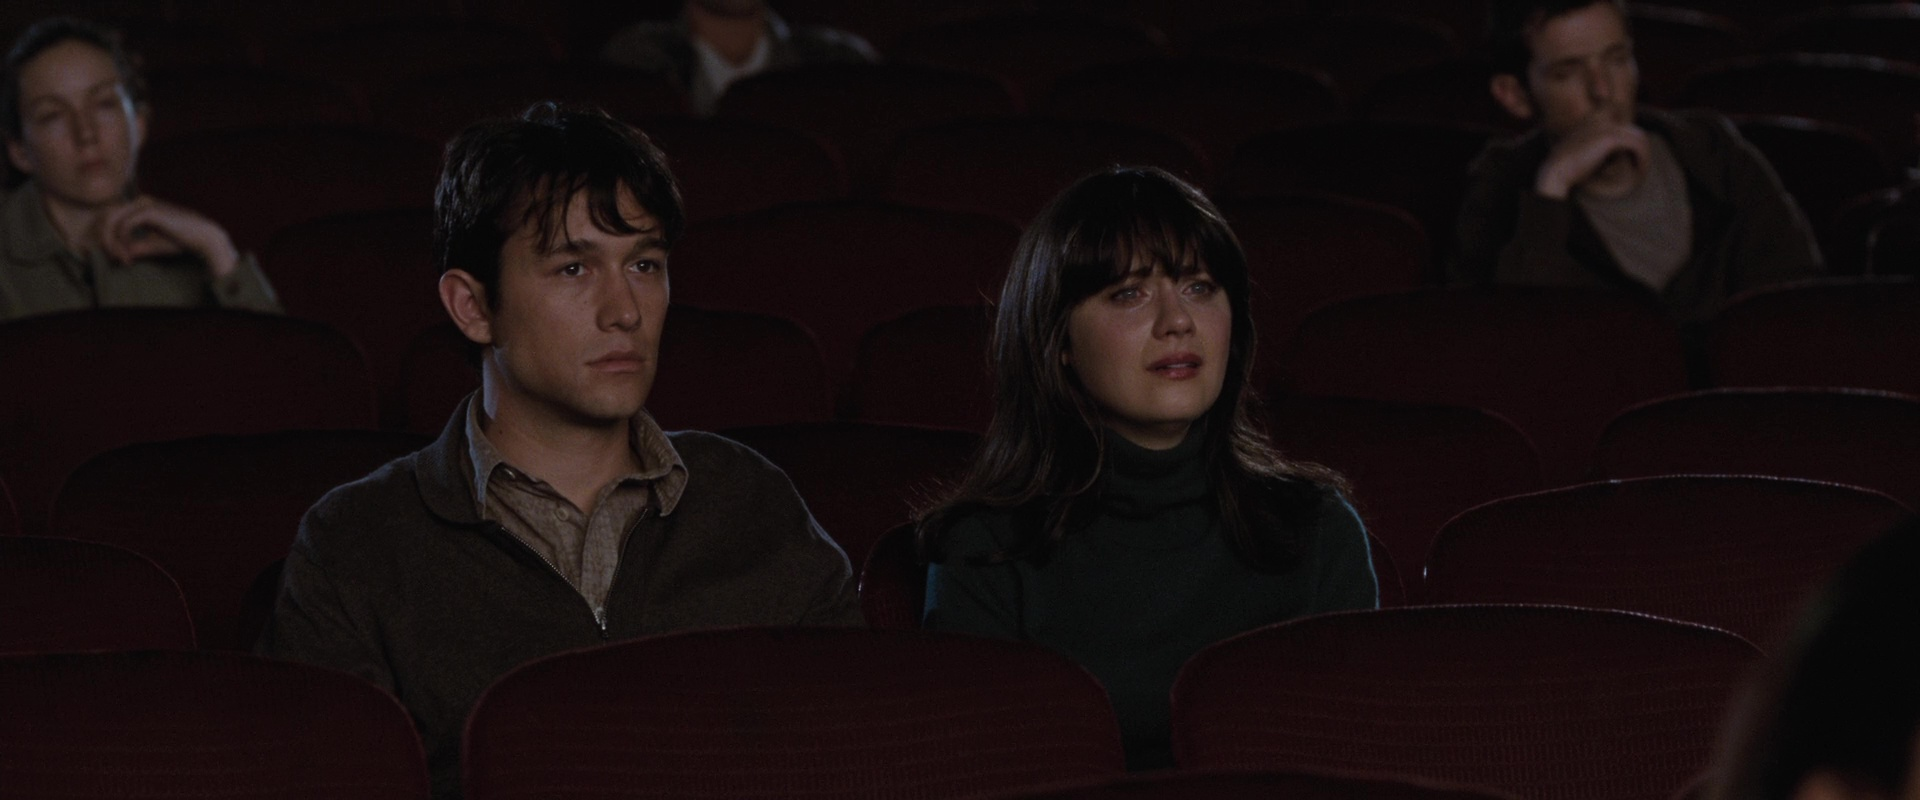 500 Days of Summer film still 3